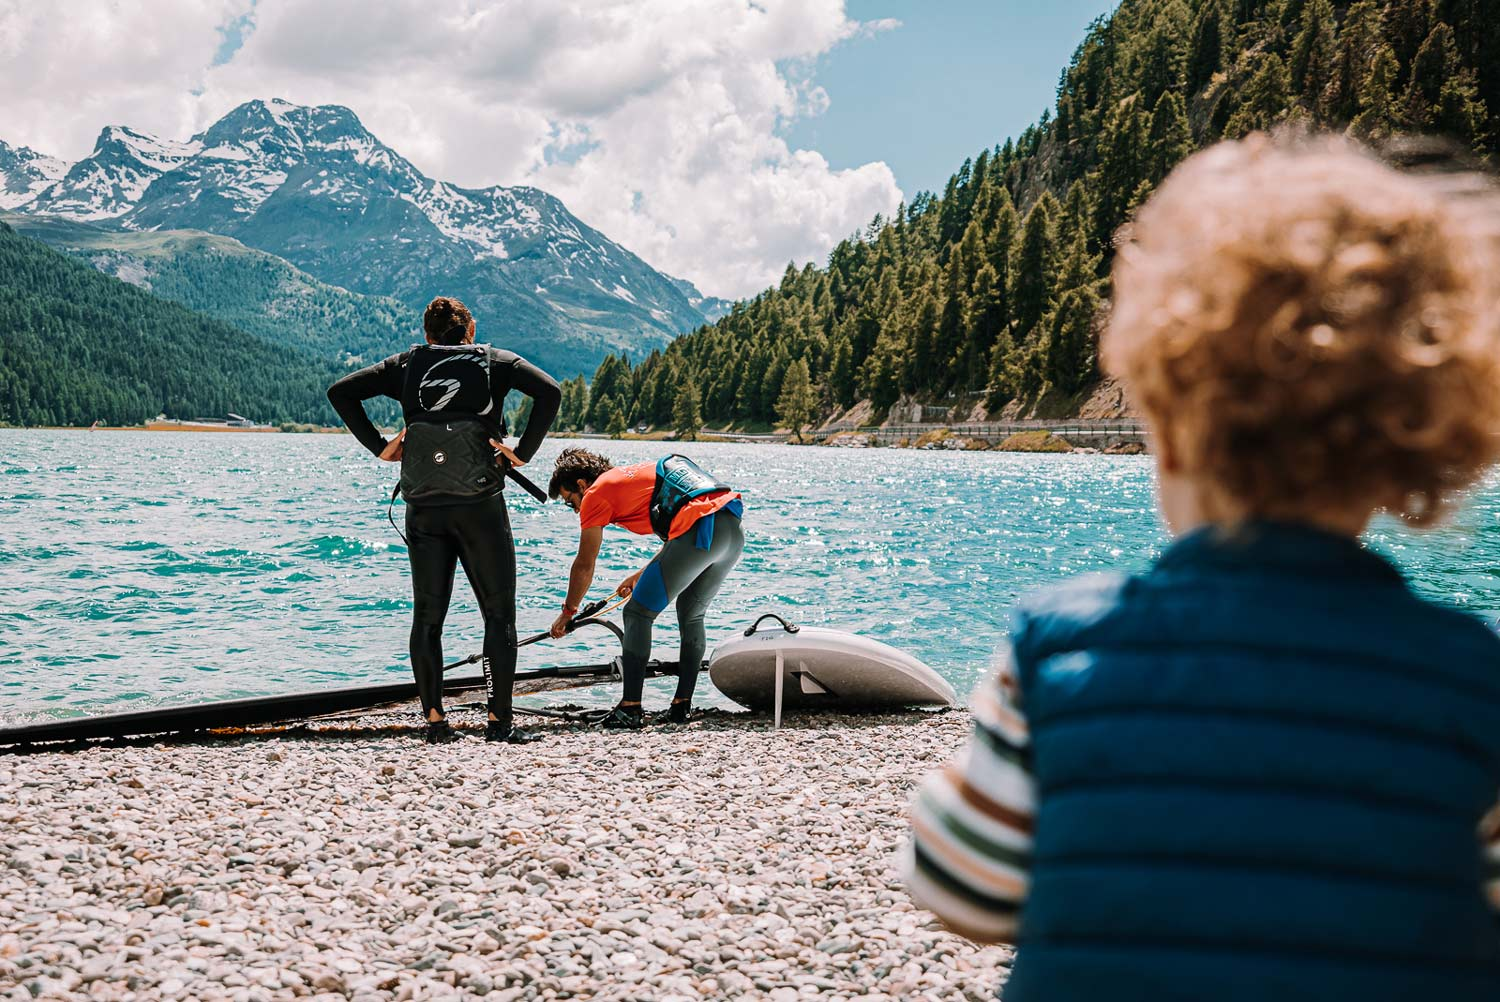 Son observes father and kite instructor on the shore of Lake Silvaplana